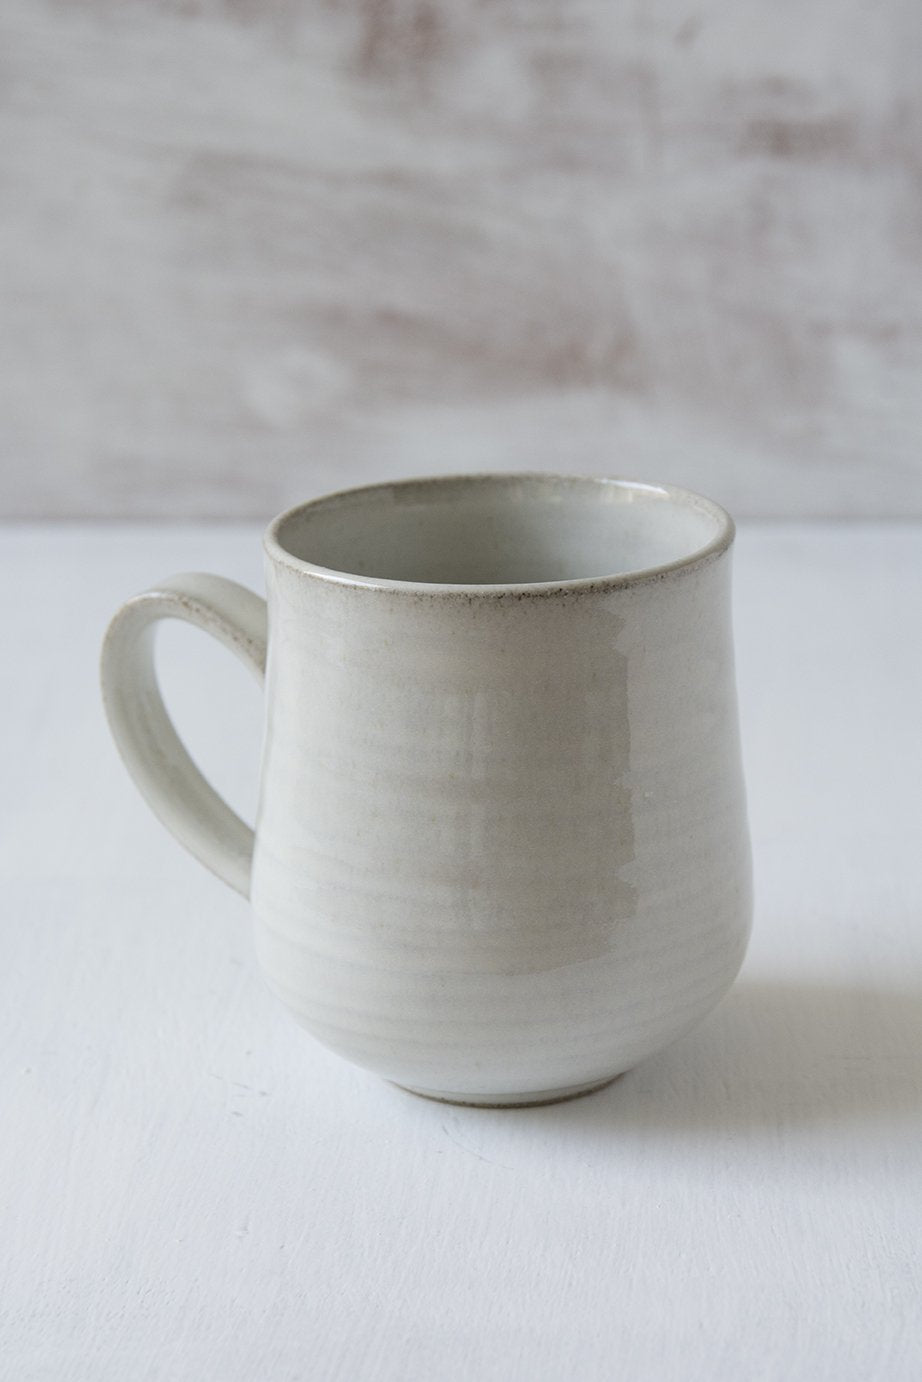 White Pottery Mug, 10 fl oz - Mad About Pottery - Mug